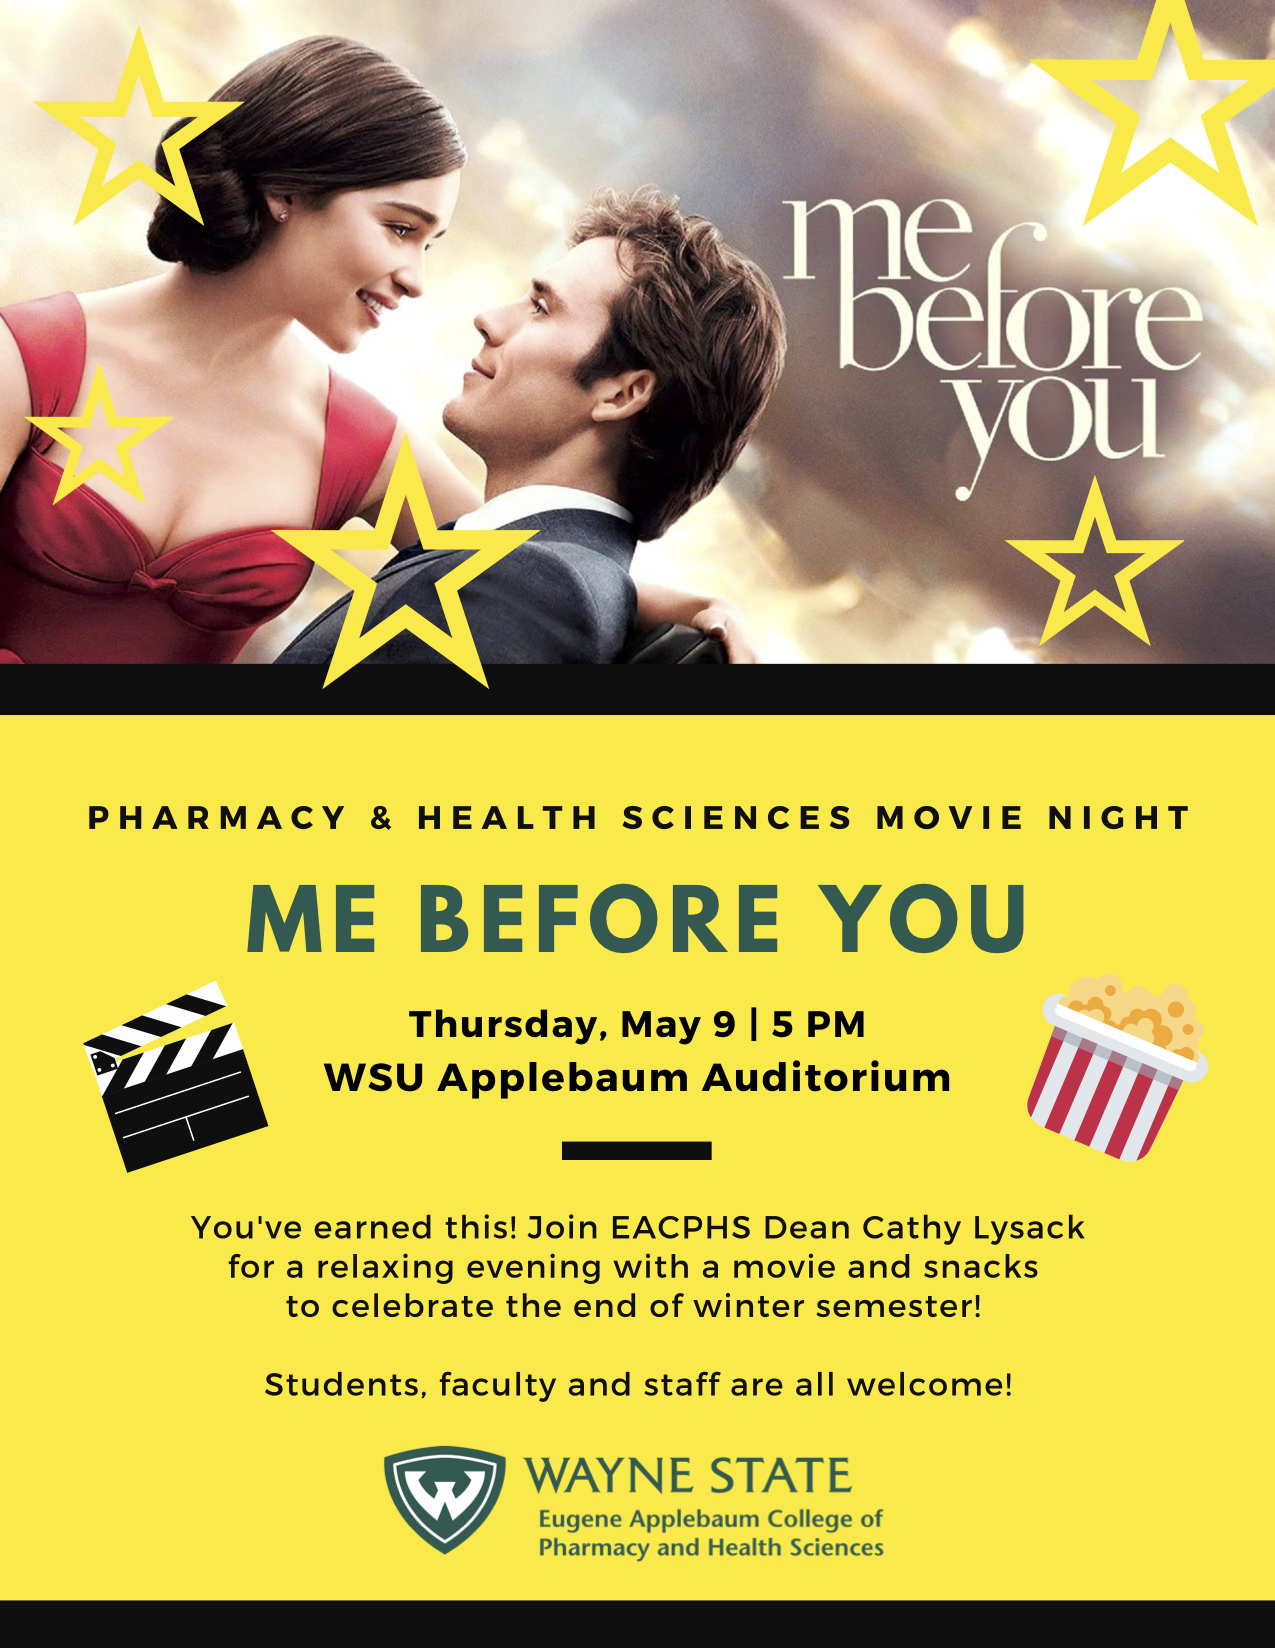 Movie Night is May 9 at 5 p.m. in the WSU Applebaum Audieot